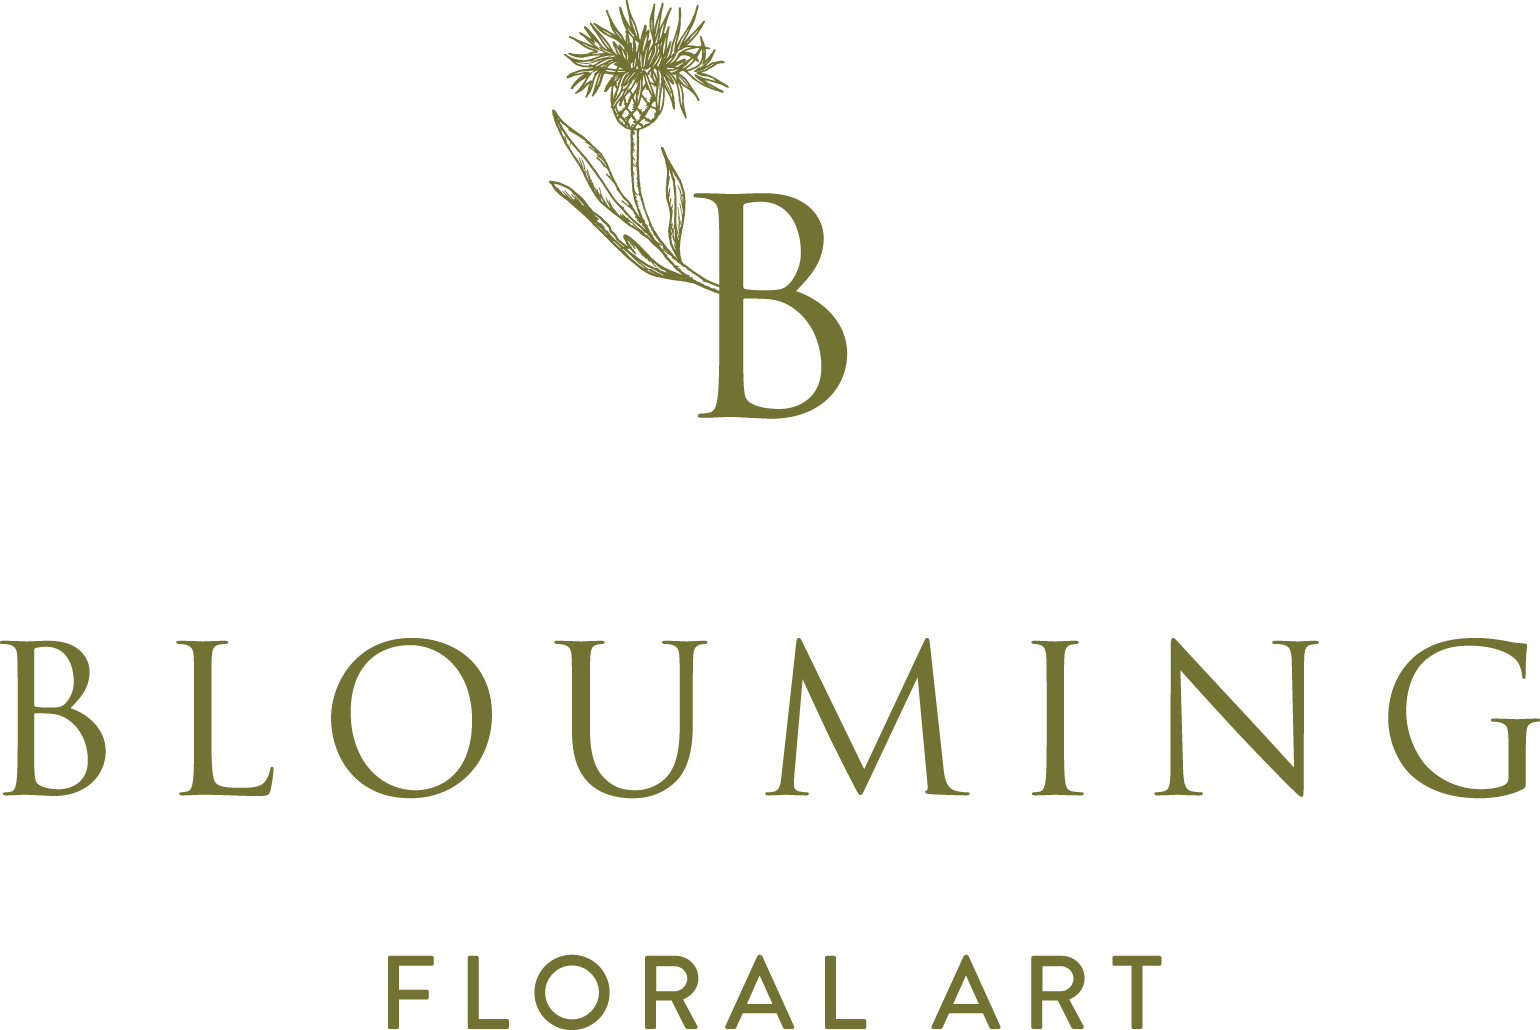 Shop Blouming floral art